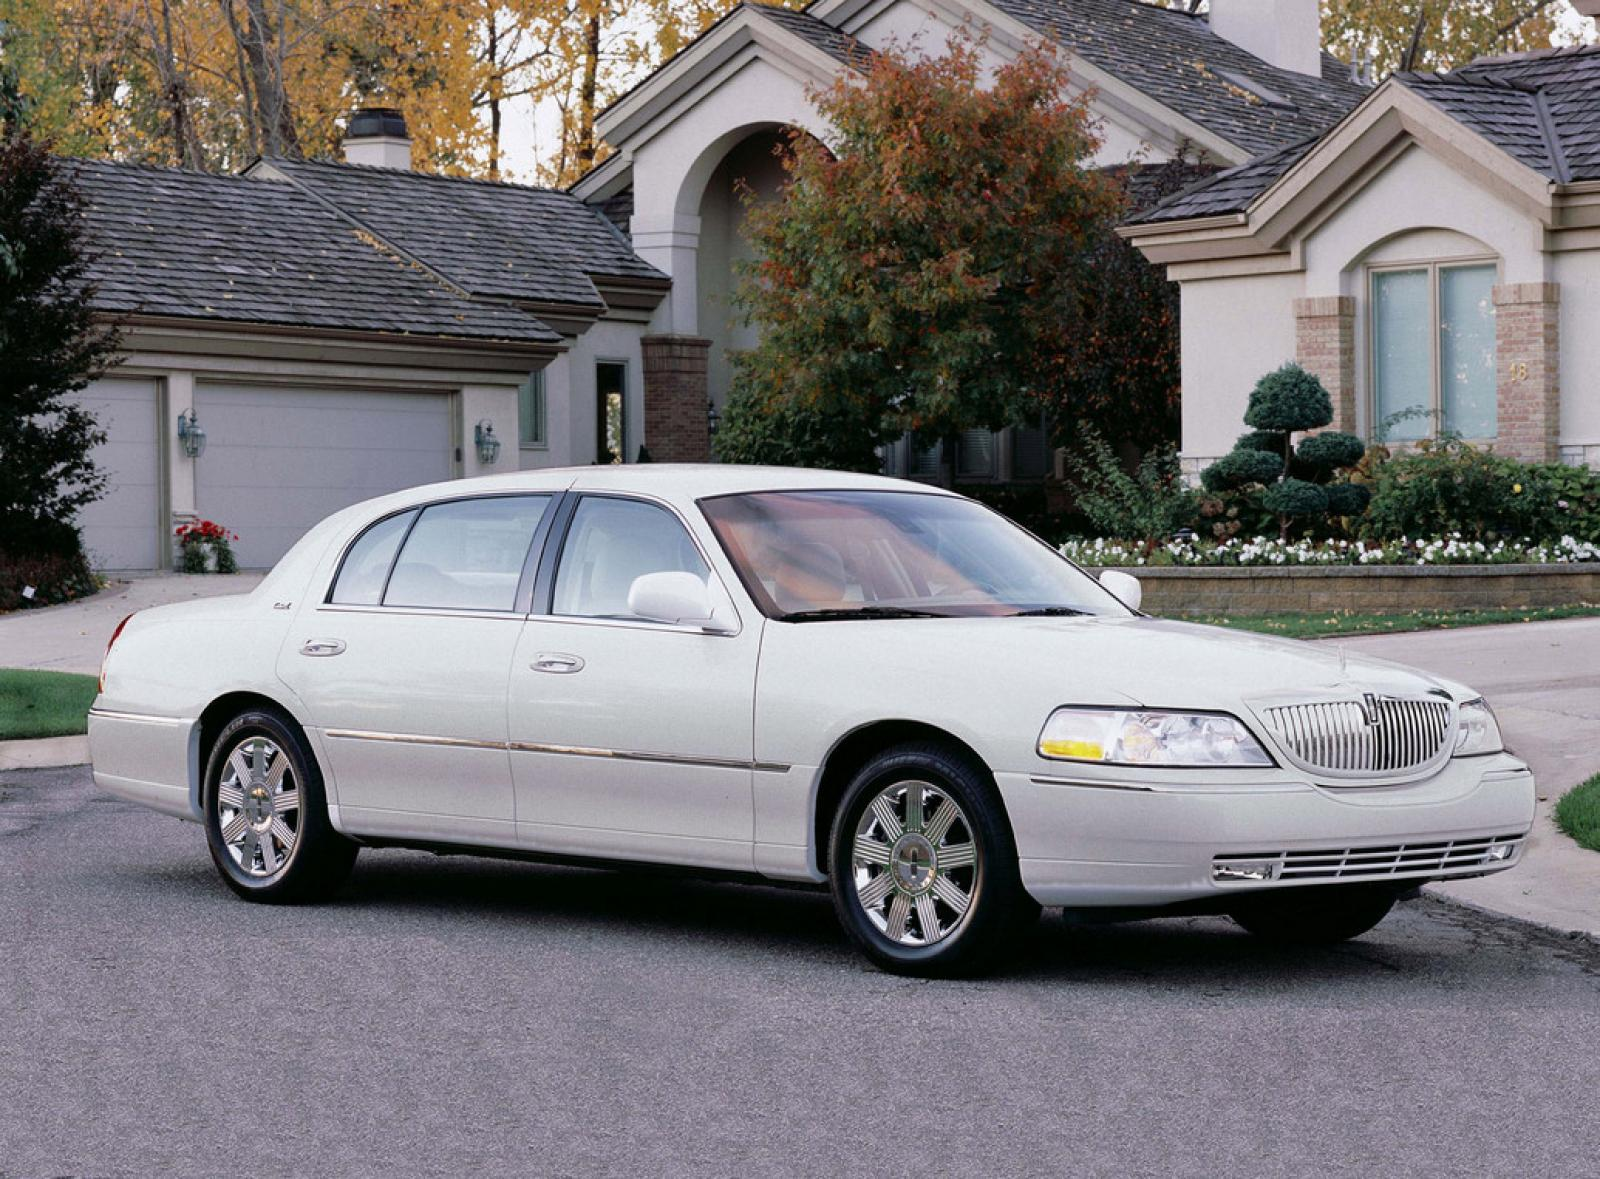 2011 Lincoln Town Car Information And Photos Zombiedrive Lowrider Black 9 800 1024 1280 1600 Origin